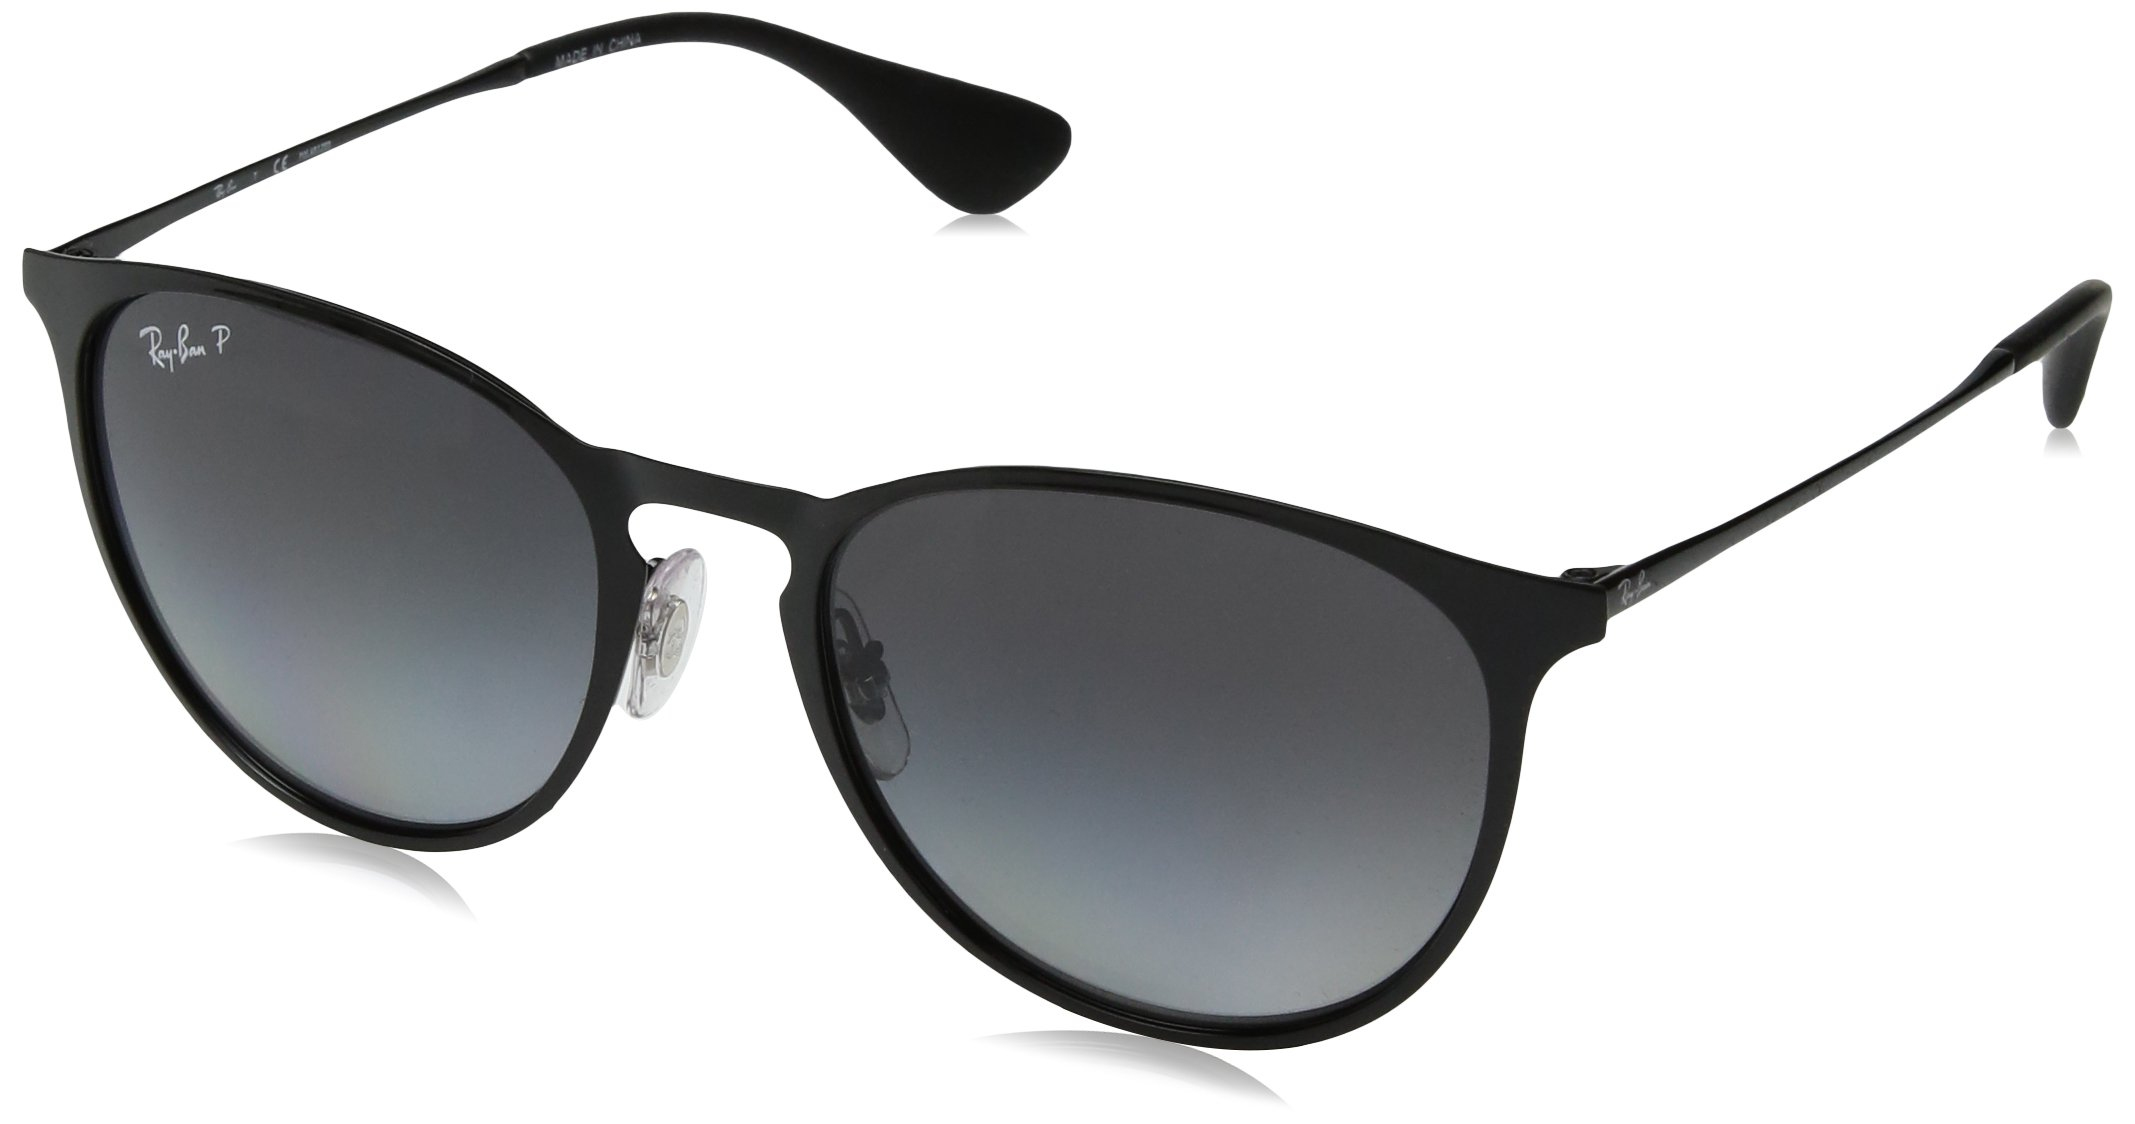 Ray-Ban RB3539 Erika Round Metal Sunglasses, Shiny Black/Polarized Grey Gradient, 54 mm